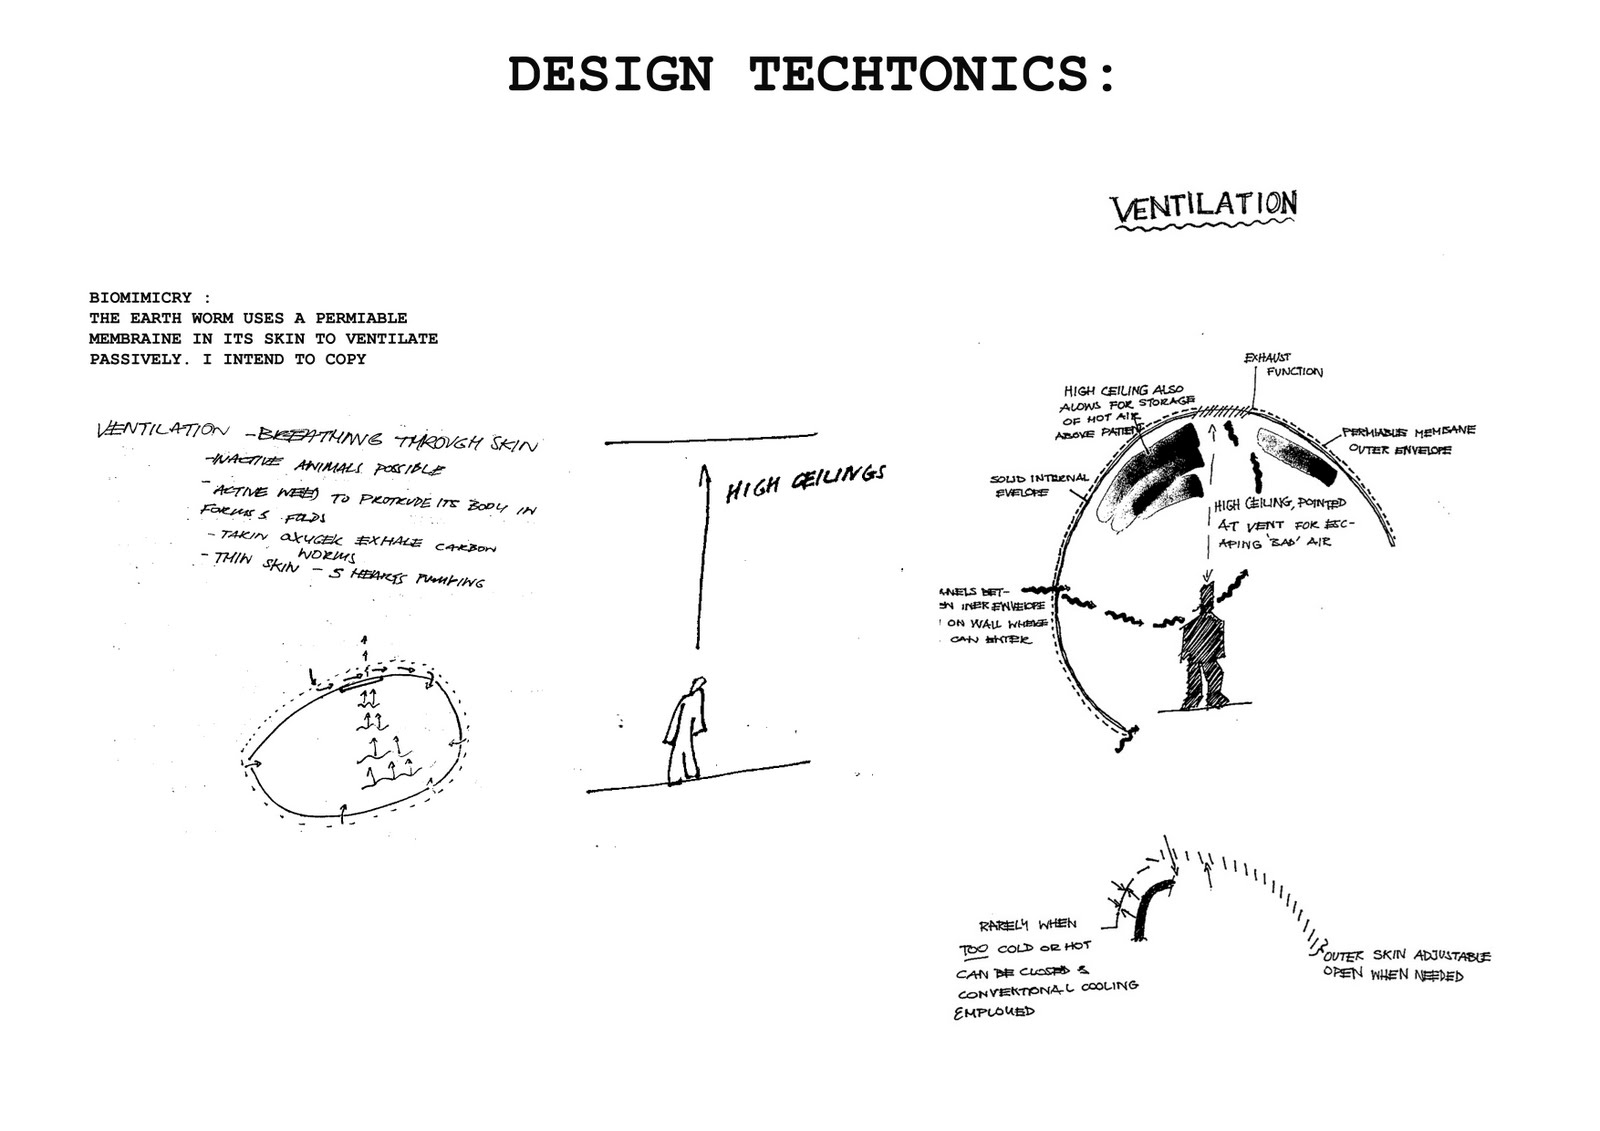 Architectural design 5 techtonic issues for Architectural design problems